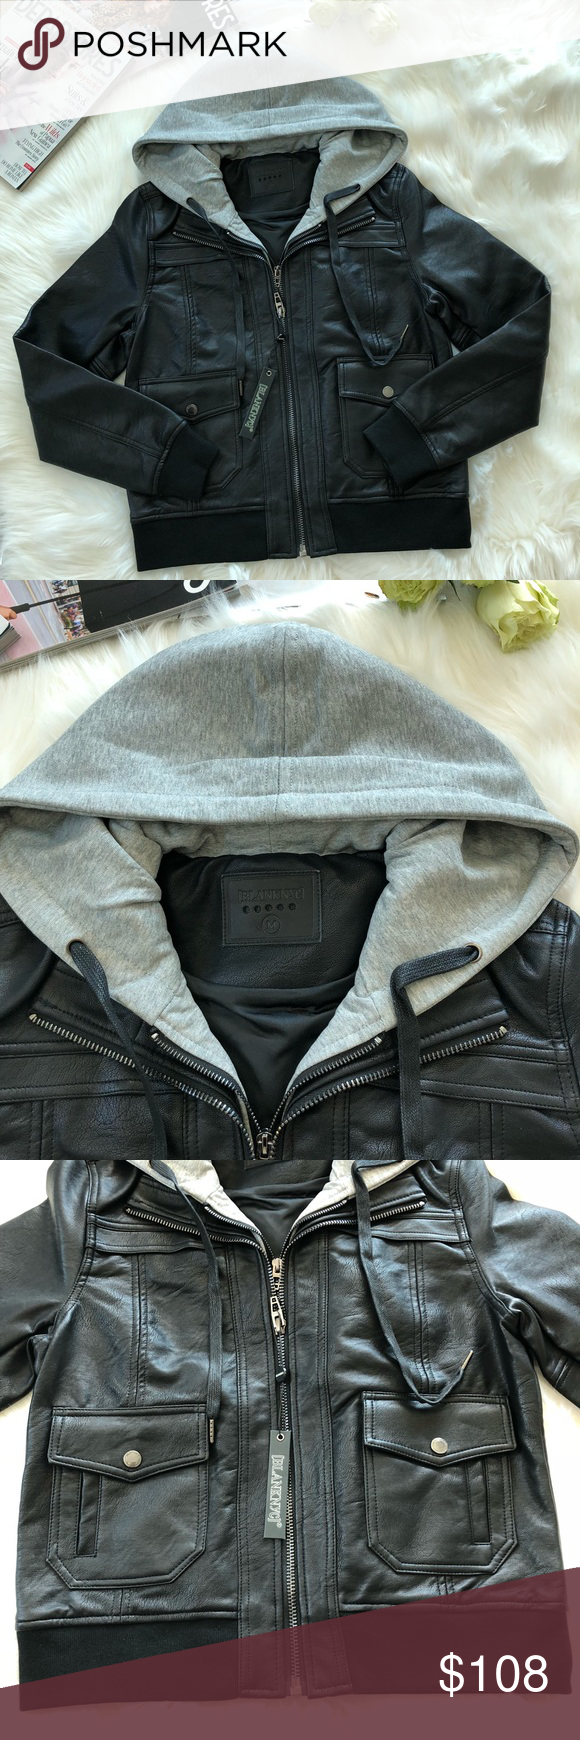 BLANKNYC Faux Leather Jacket with Hoodie NWT Blanknyc